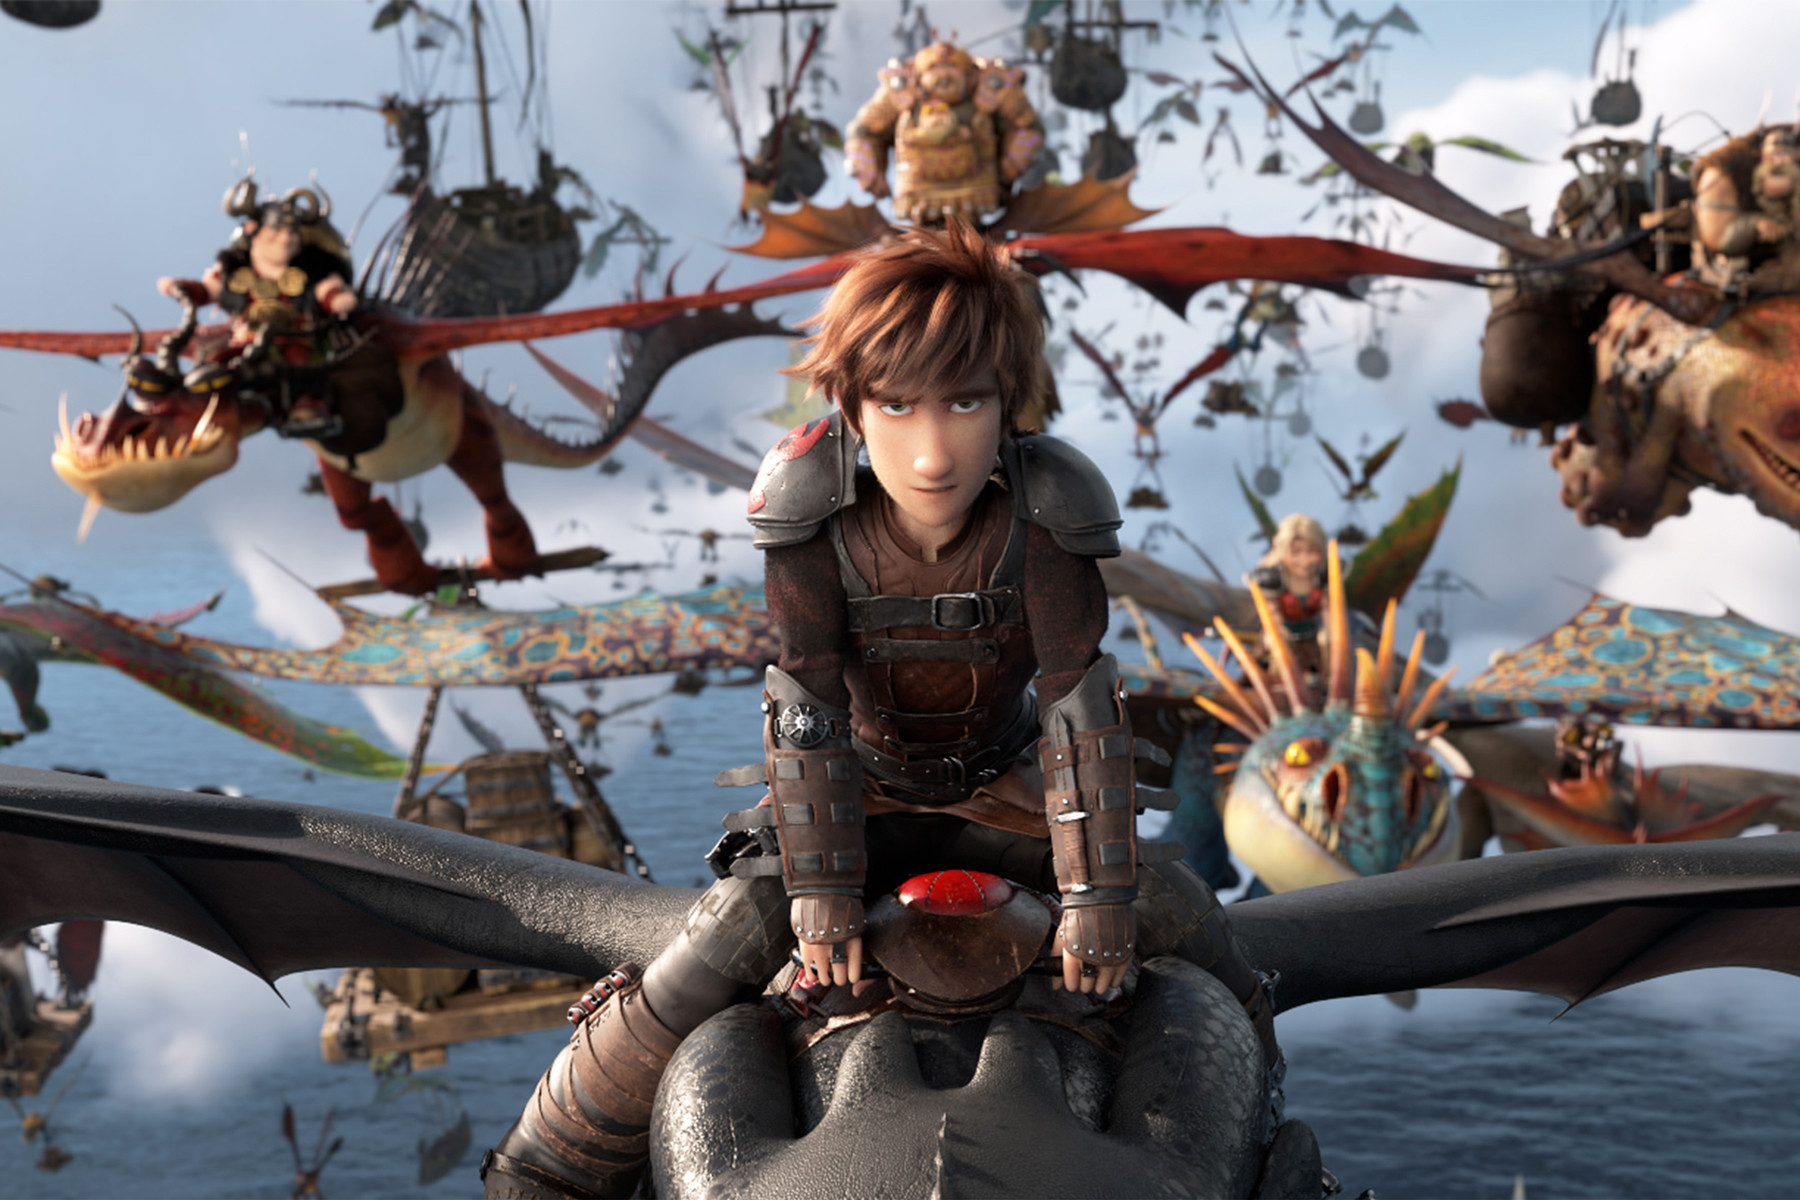 Hiccup (voiced by Jay Baruchel) rides Toothless at the head of the dragon army in How to Train Your Dragon: The Hidden World (2019)